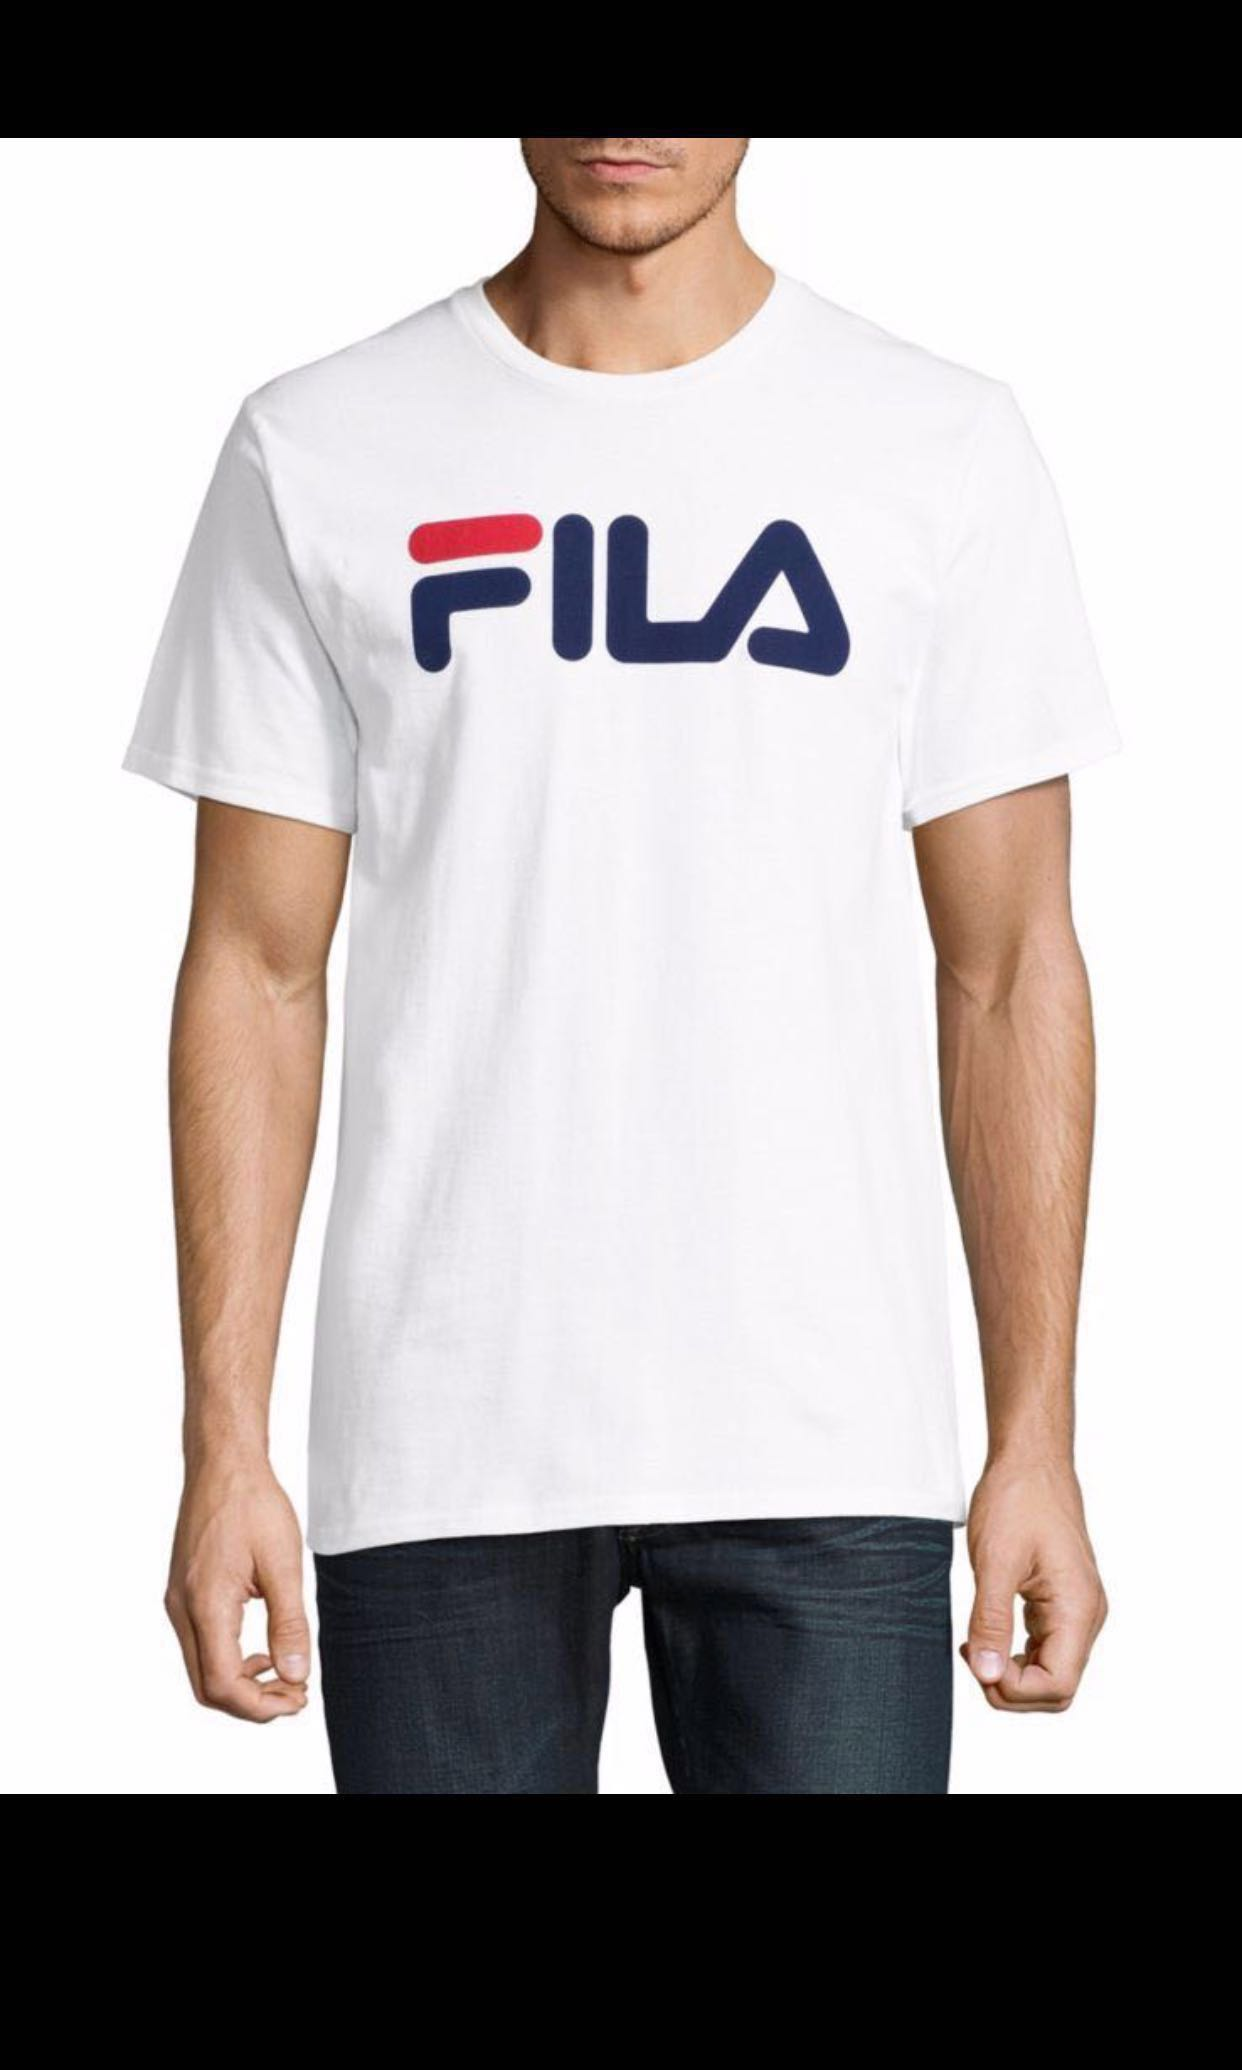 24358872 Authentic Fila Basic T-Shirt, Men's Fashion, Clothes, Tops on Carousell